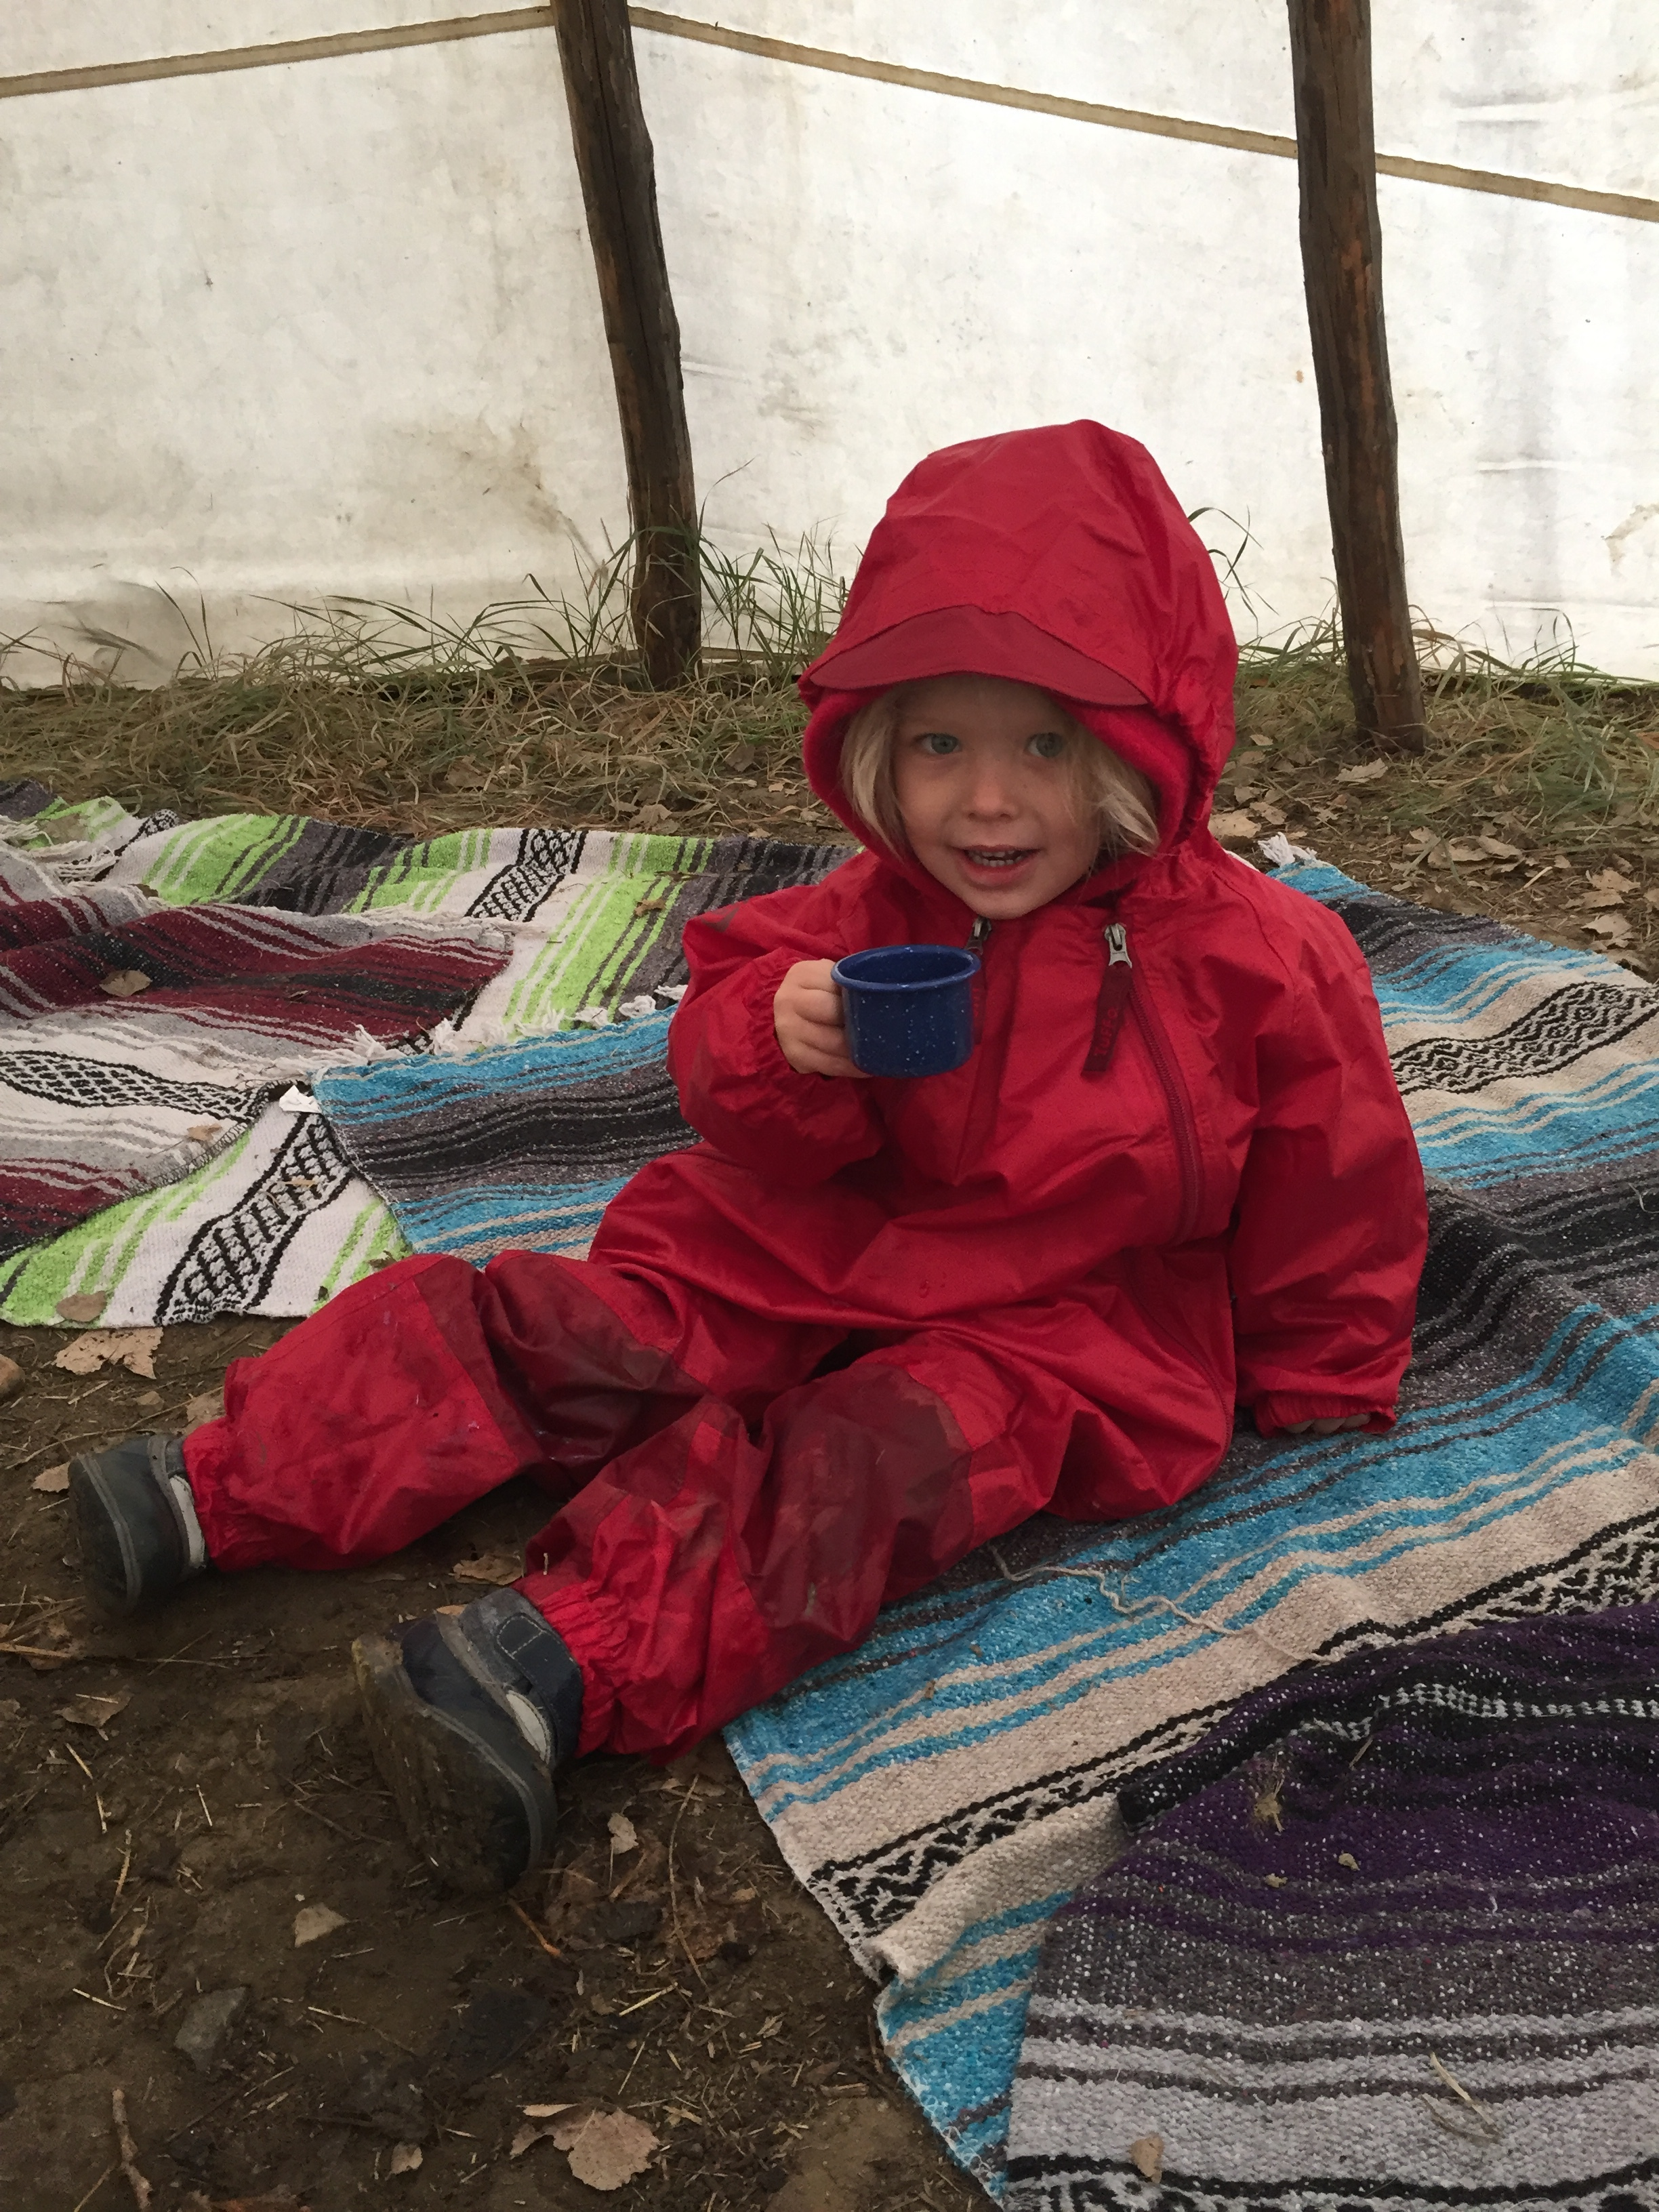 Enjoying a cup of cherry tea in the tipi! Sharing tea is one of our daily rituals.